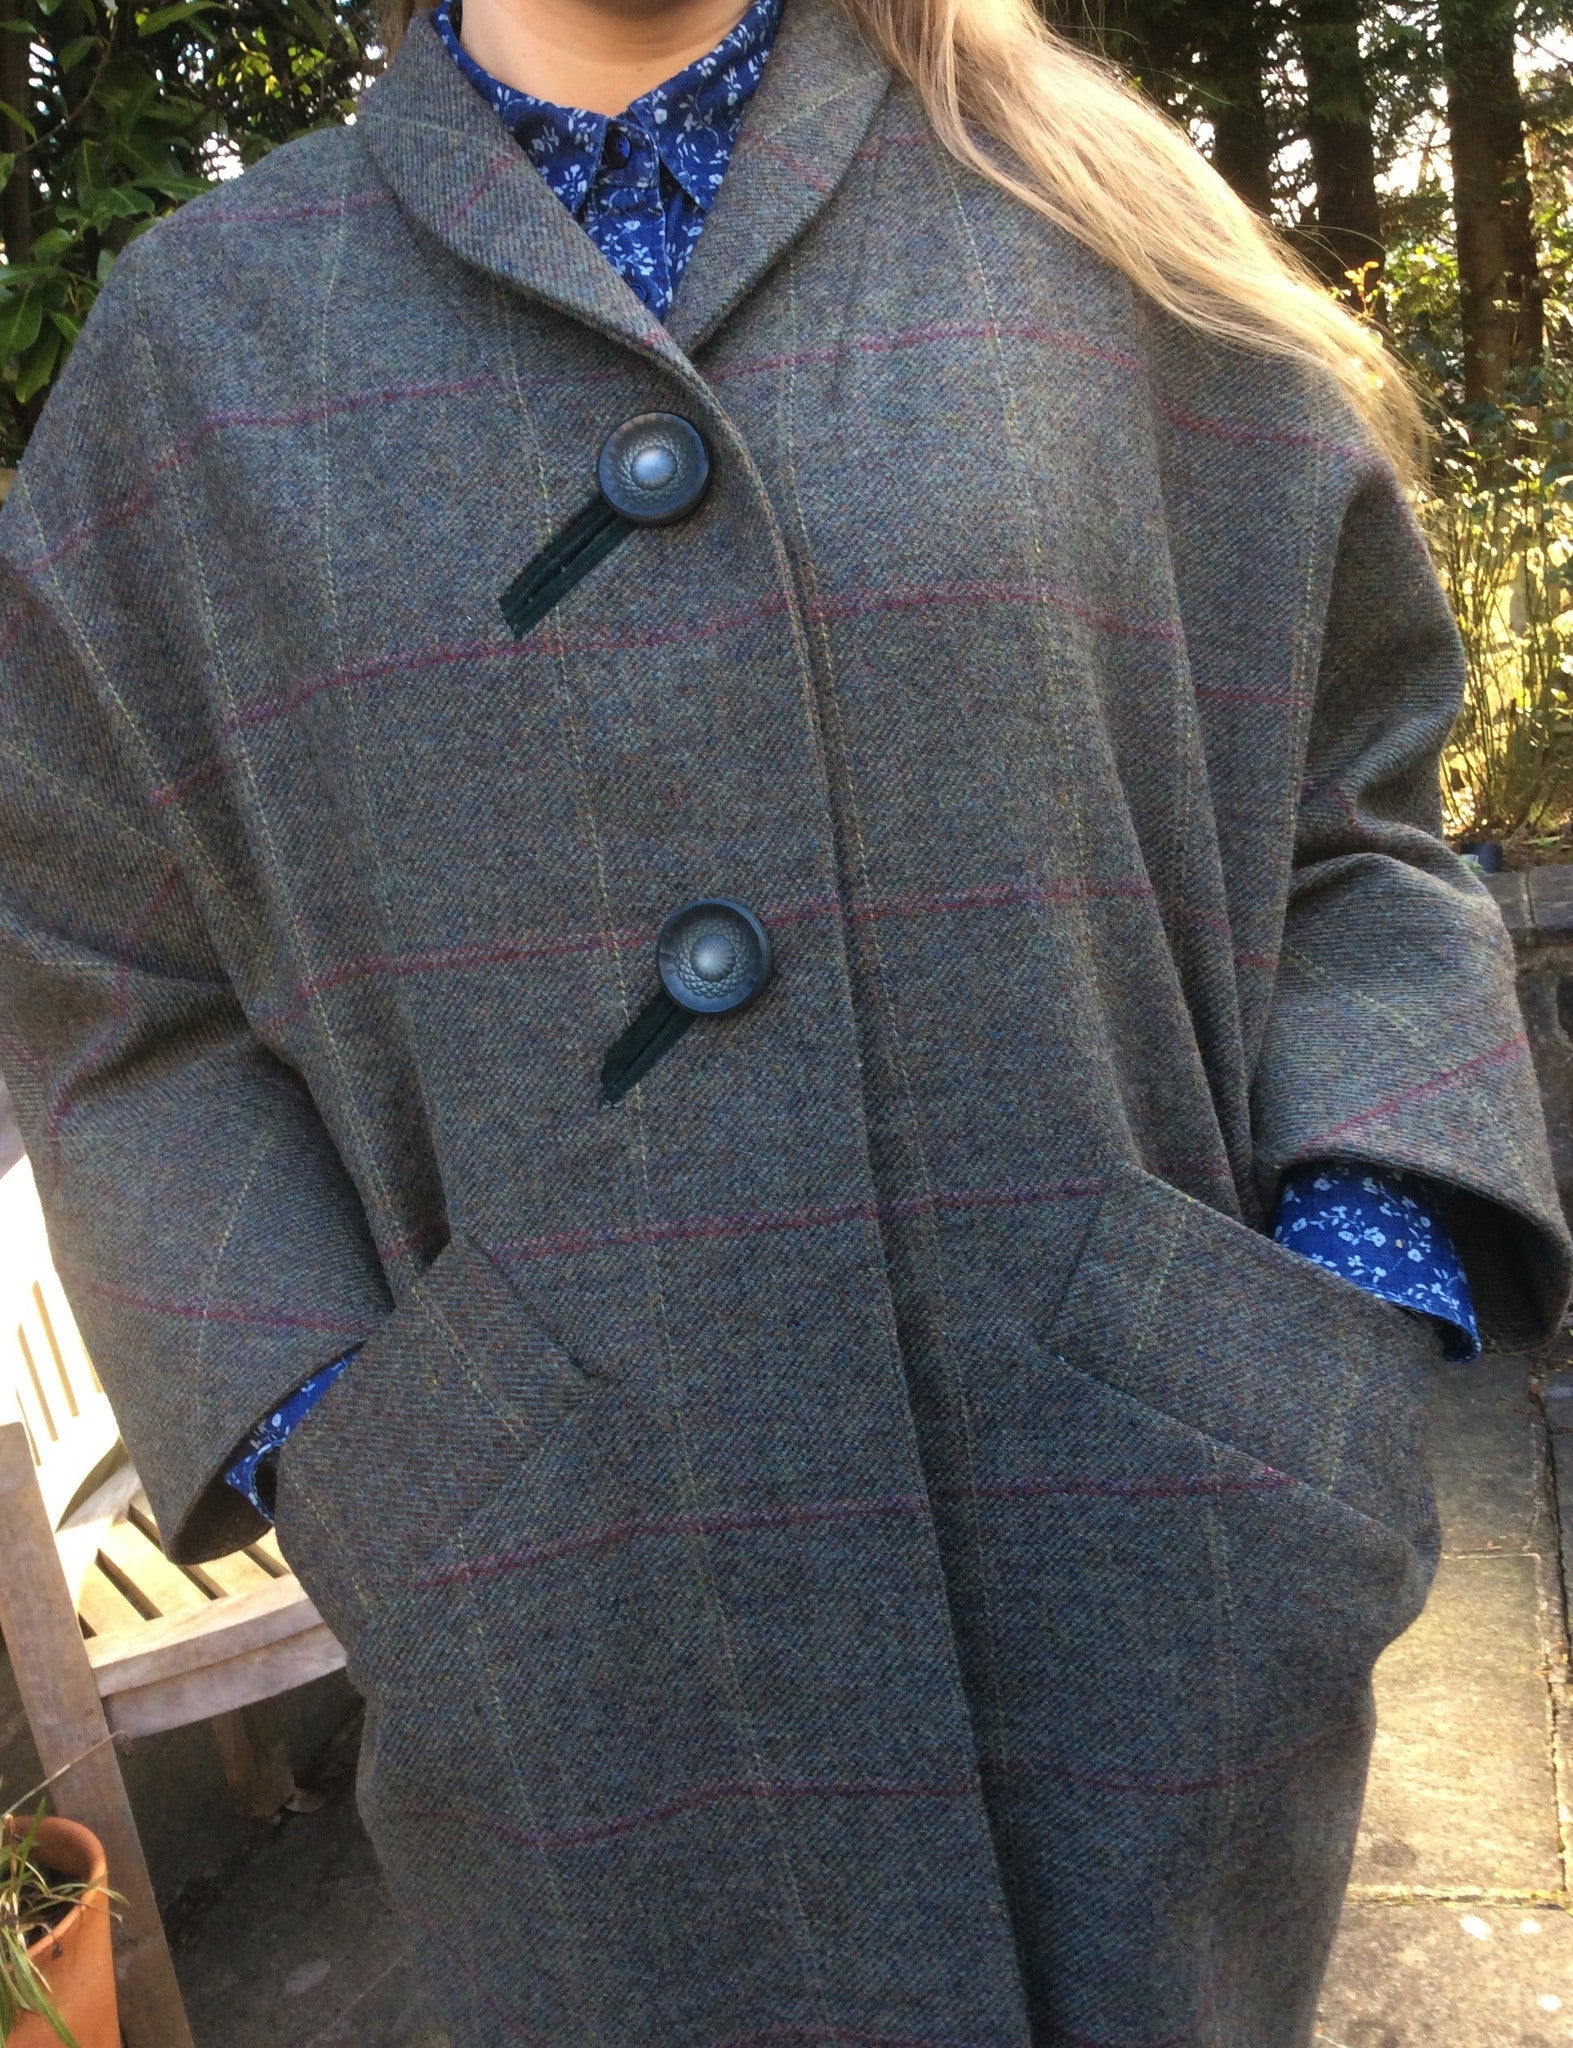 My new coat - with pockets big enough for a dead rabbit!